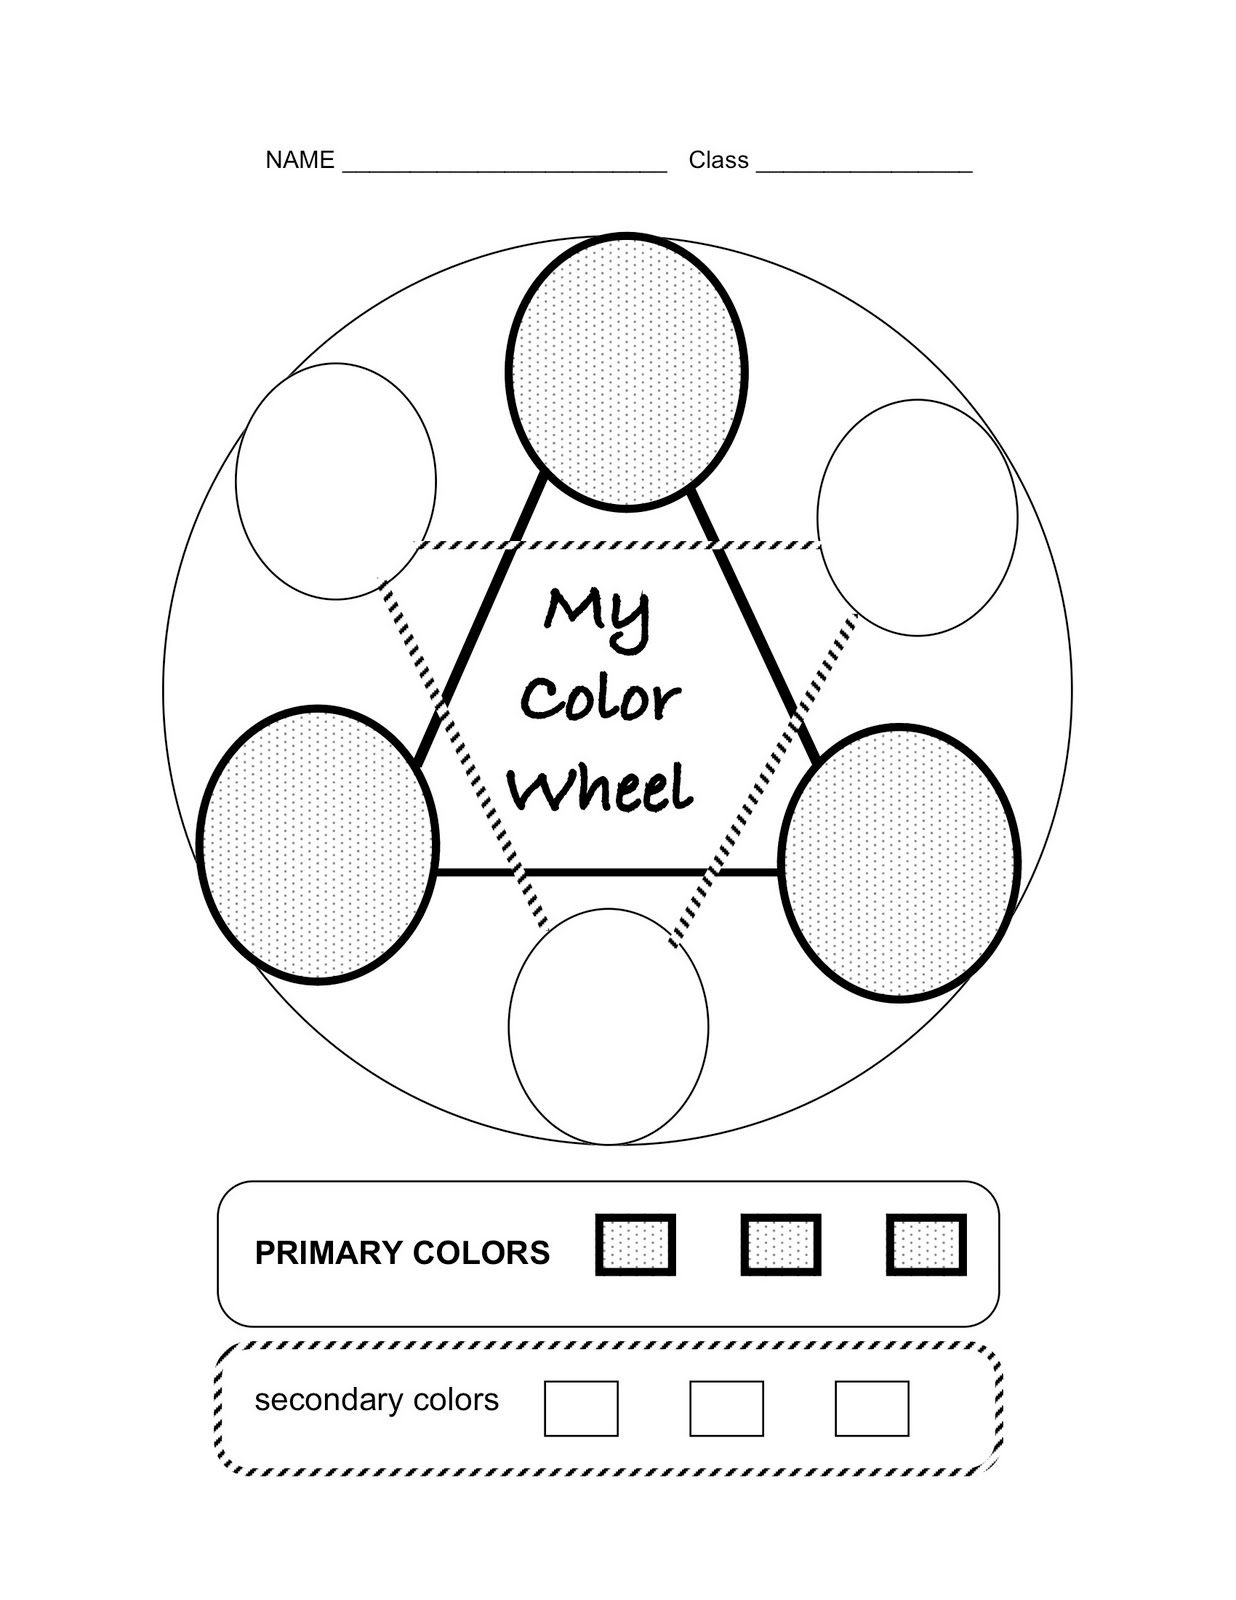 Color wheel worksheets for elementary - Color Wheels